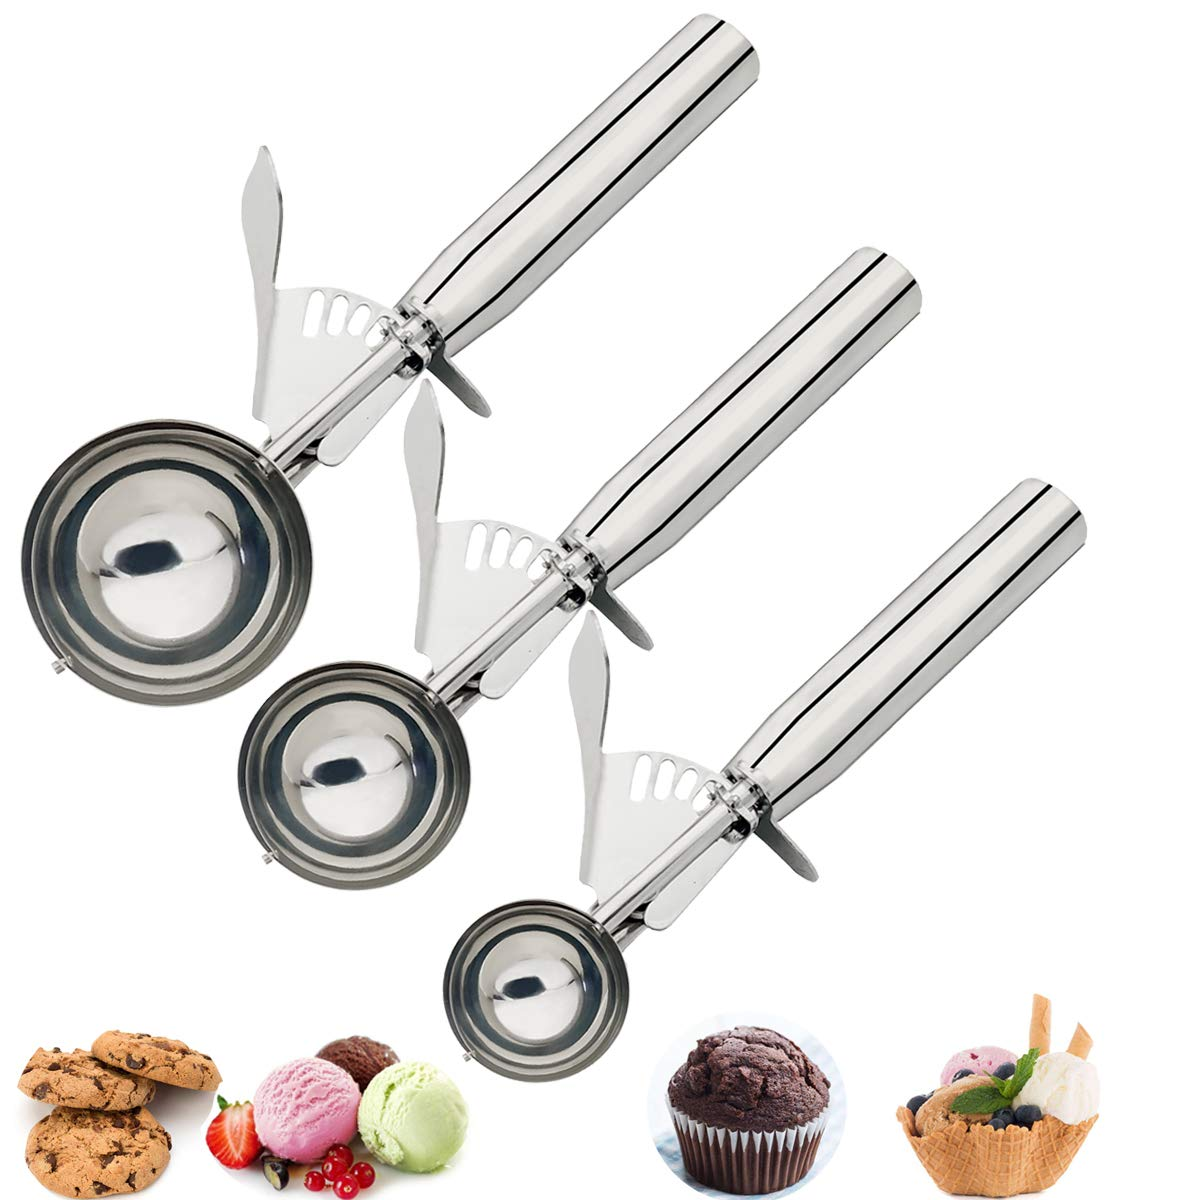 Cookie Scoops Set of 3, Excellent 18/8 Stainless Steel Ice Cream Scoop Set, Perfect for Cookie, Ice Cream, Cupcake, Muffin, Meatball by HOMURE H